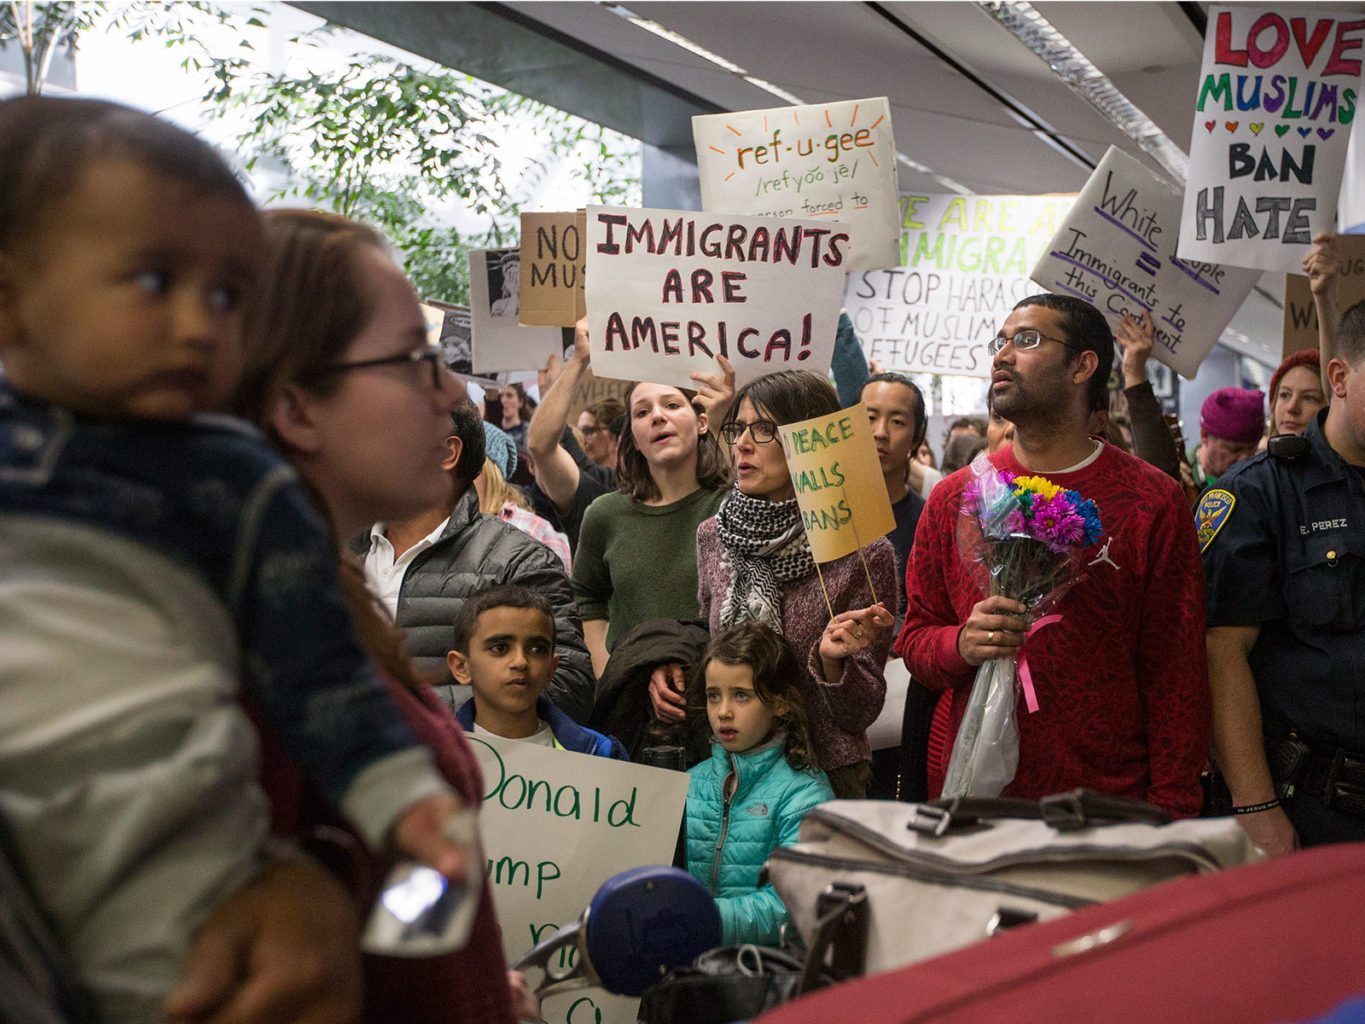 People gather near the exit of customs screening during a protest at San Franicsco International Airport on Jan. 29. (Jessica Christian/S.F. Examiner)